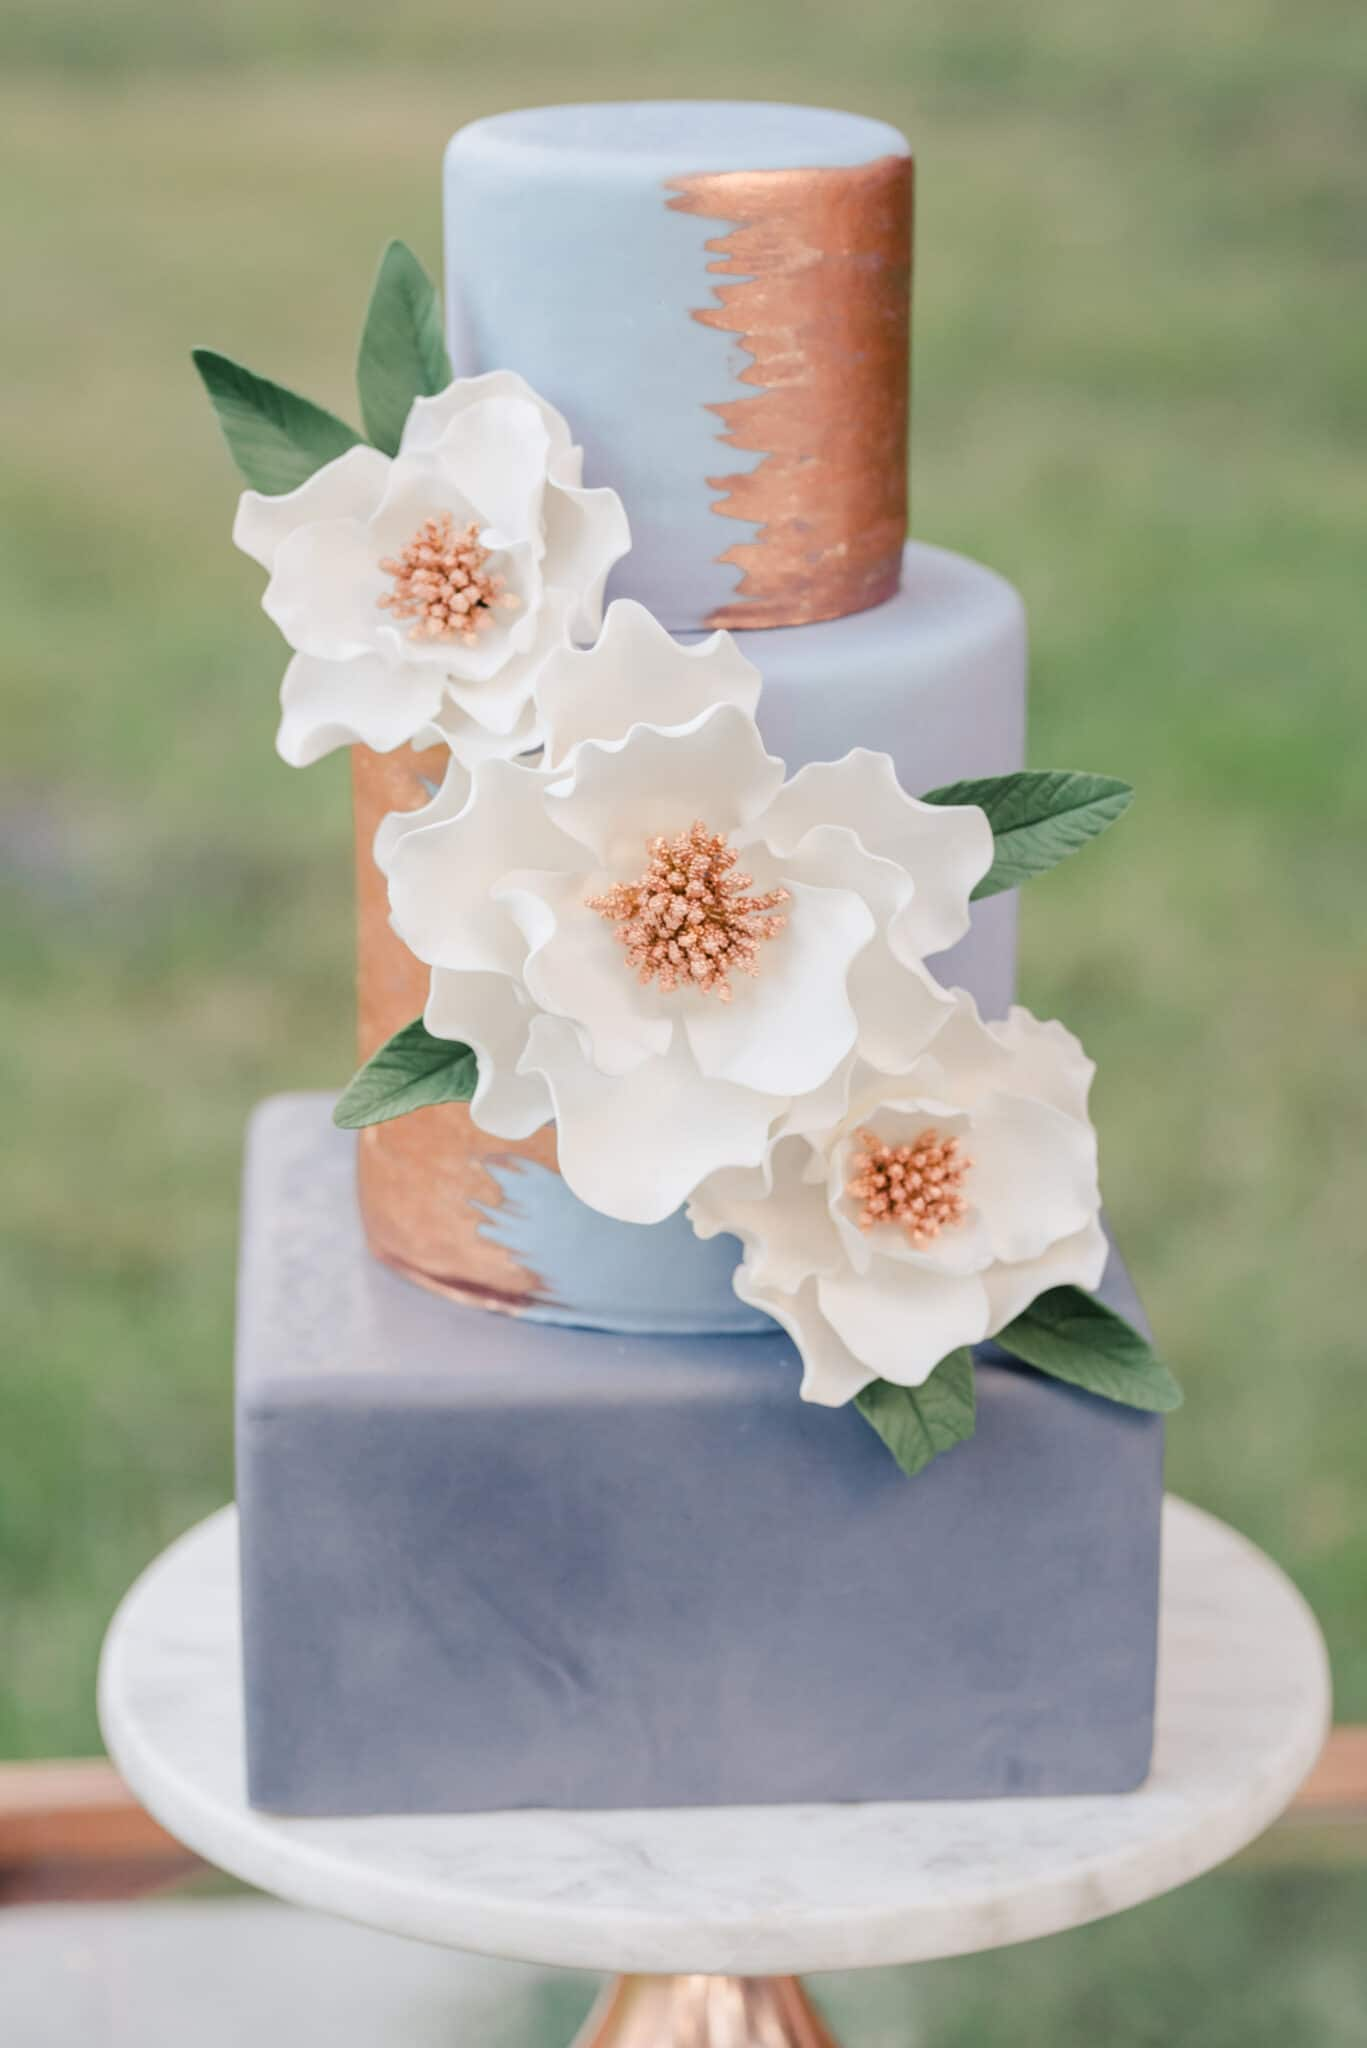 Blue cake with white flowers and gold with a square base